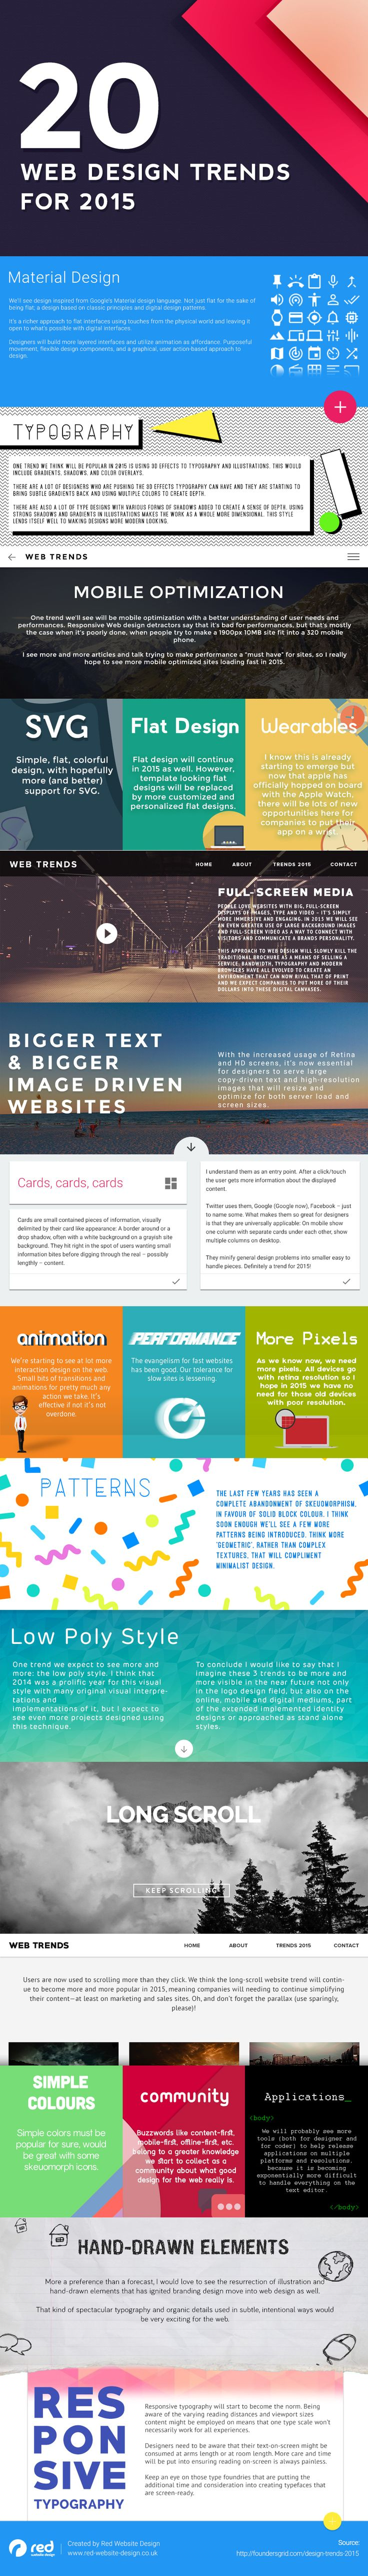 20 Web Design Trends You Can Expect to See in 2015  | web design inspiration | digital media arts college | www.dmac.edu | 561.391.1148